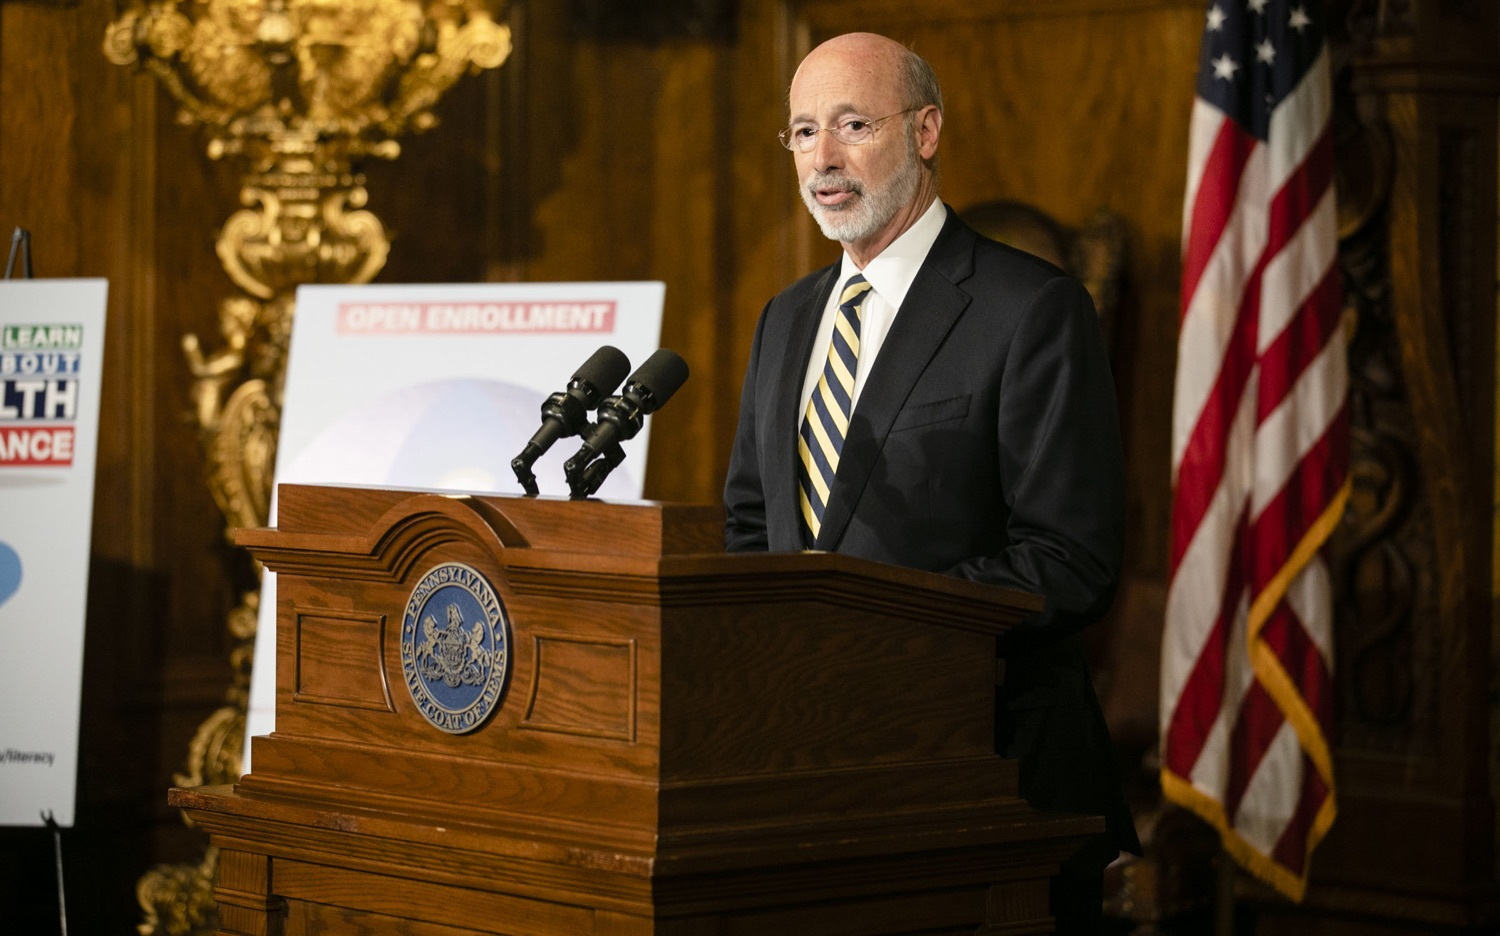 "<a href=""http://filesource.abacast.com/commonwealthofpa/photo/17564_GOV_aca_amb_003.jpg"" target=""_blank"">⇣ Download Photo<br></a>Governor Tom Wolf and Insurance Commissioner Jessica Altman advised Pennsylvanians that now is the time to buy health insurance on the federal exchange, healthcare.gov, as open enrollment continues for Affordable Care Act (ACA) plans through Dec. 15. Consumers have more options in Pennsylvania, and many will find they qualify for subsidies. November 7, 2019. Harrisburg, PA."